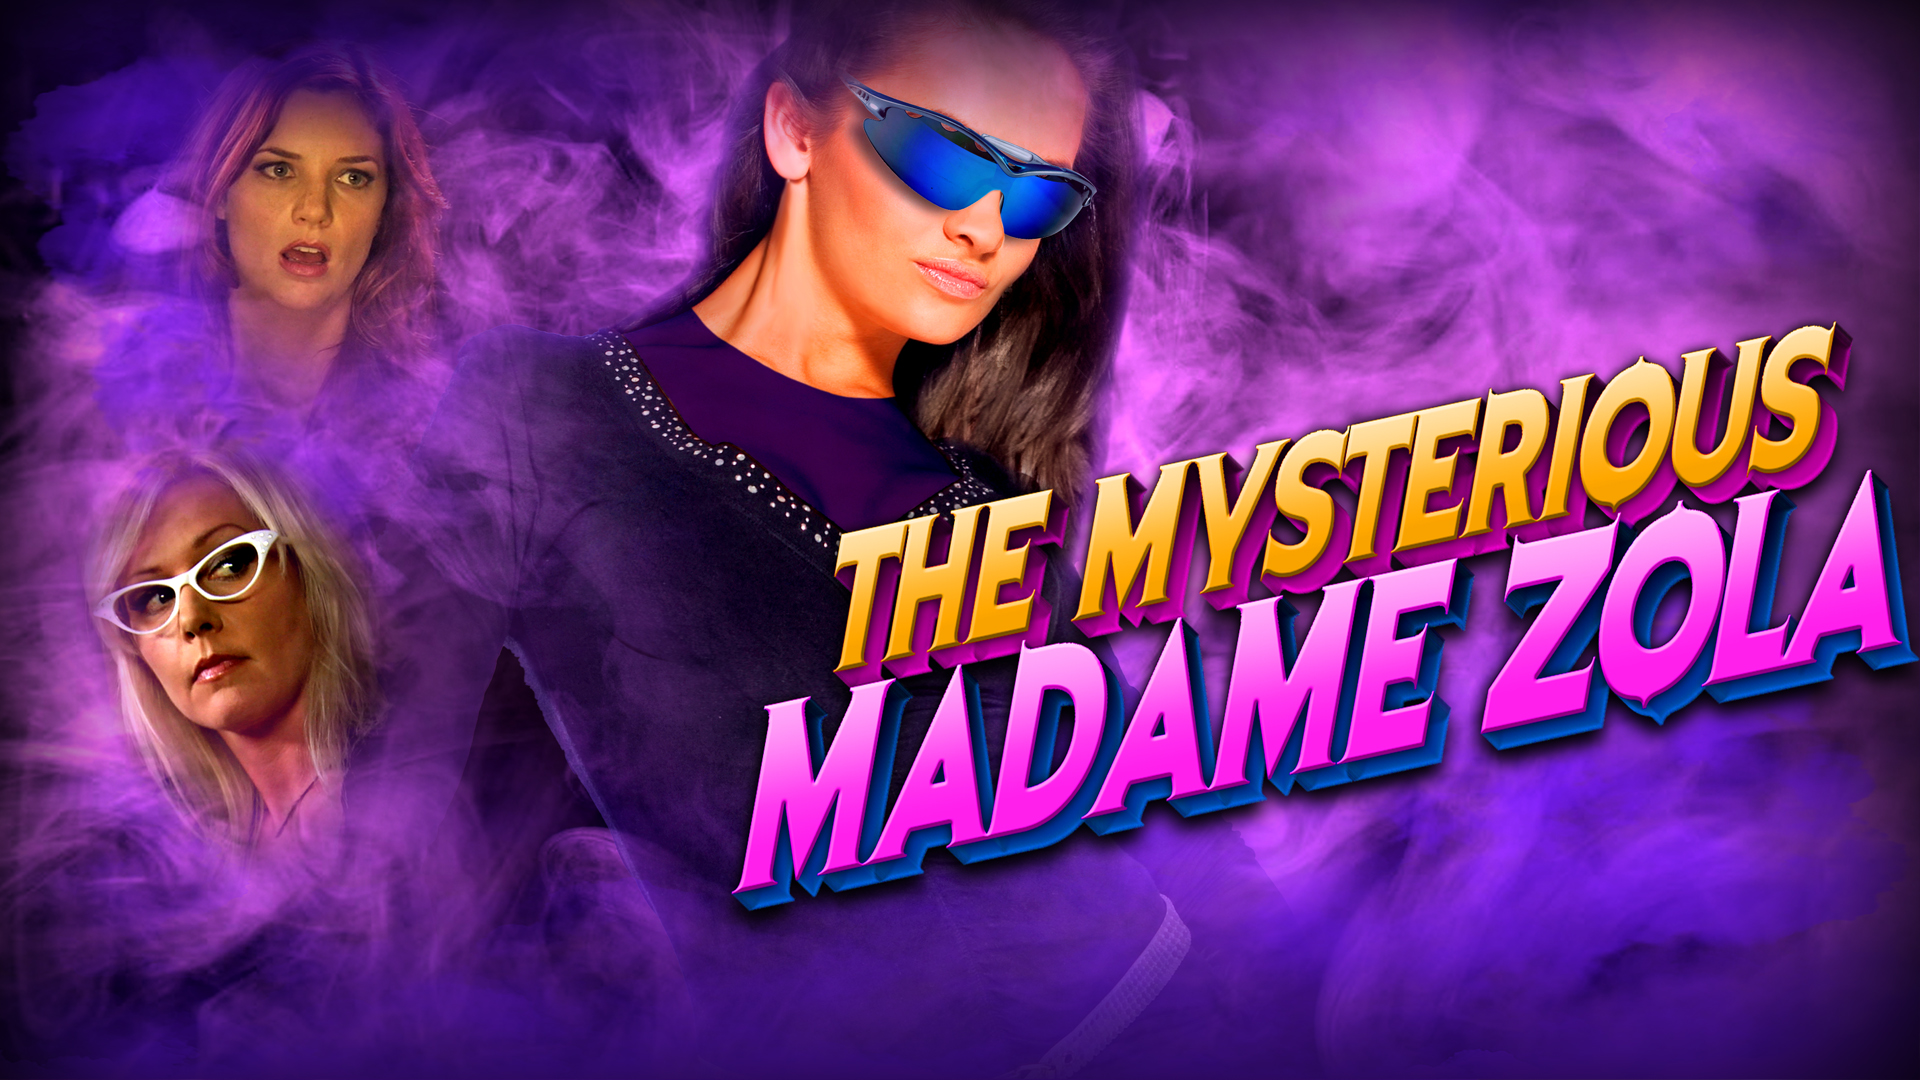 The Mysterious Madame Zola